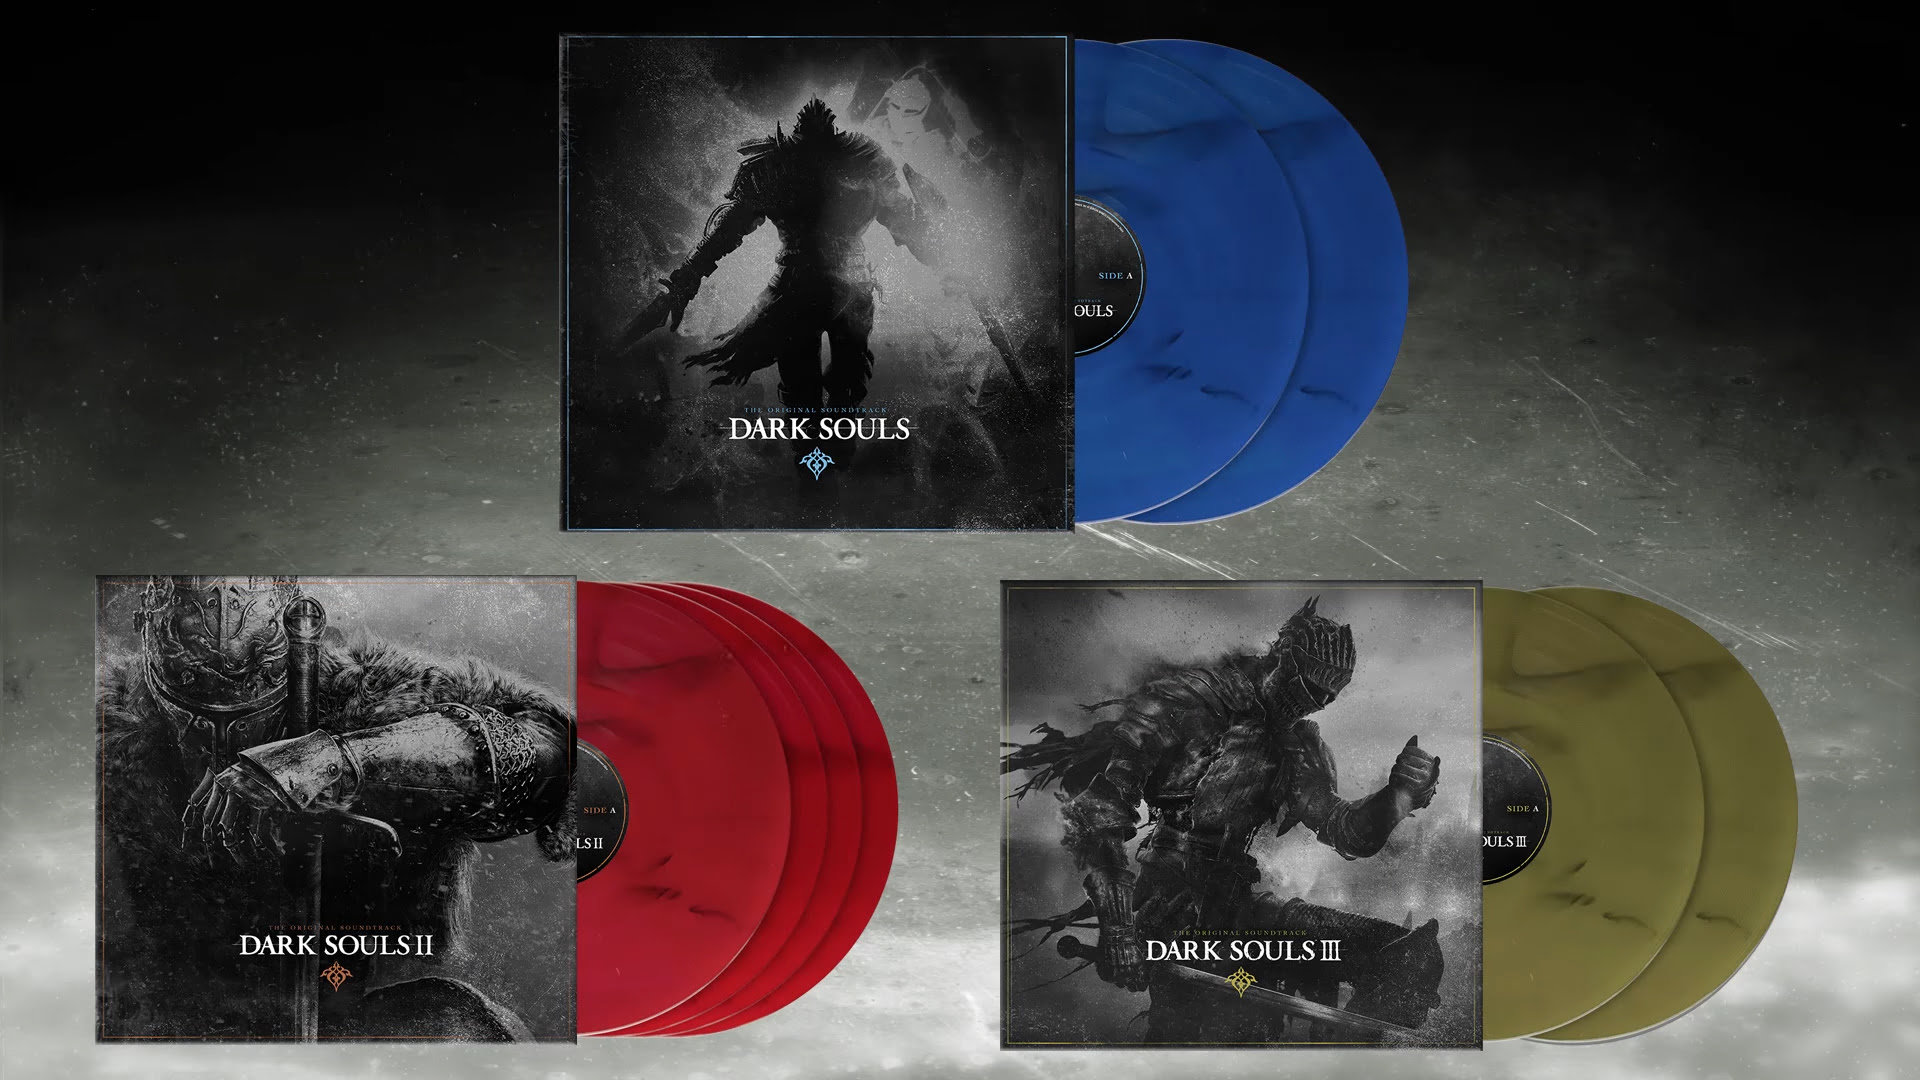 Europe is getting a real nice Dark Souls vinyl trilogy set screenshot